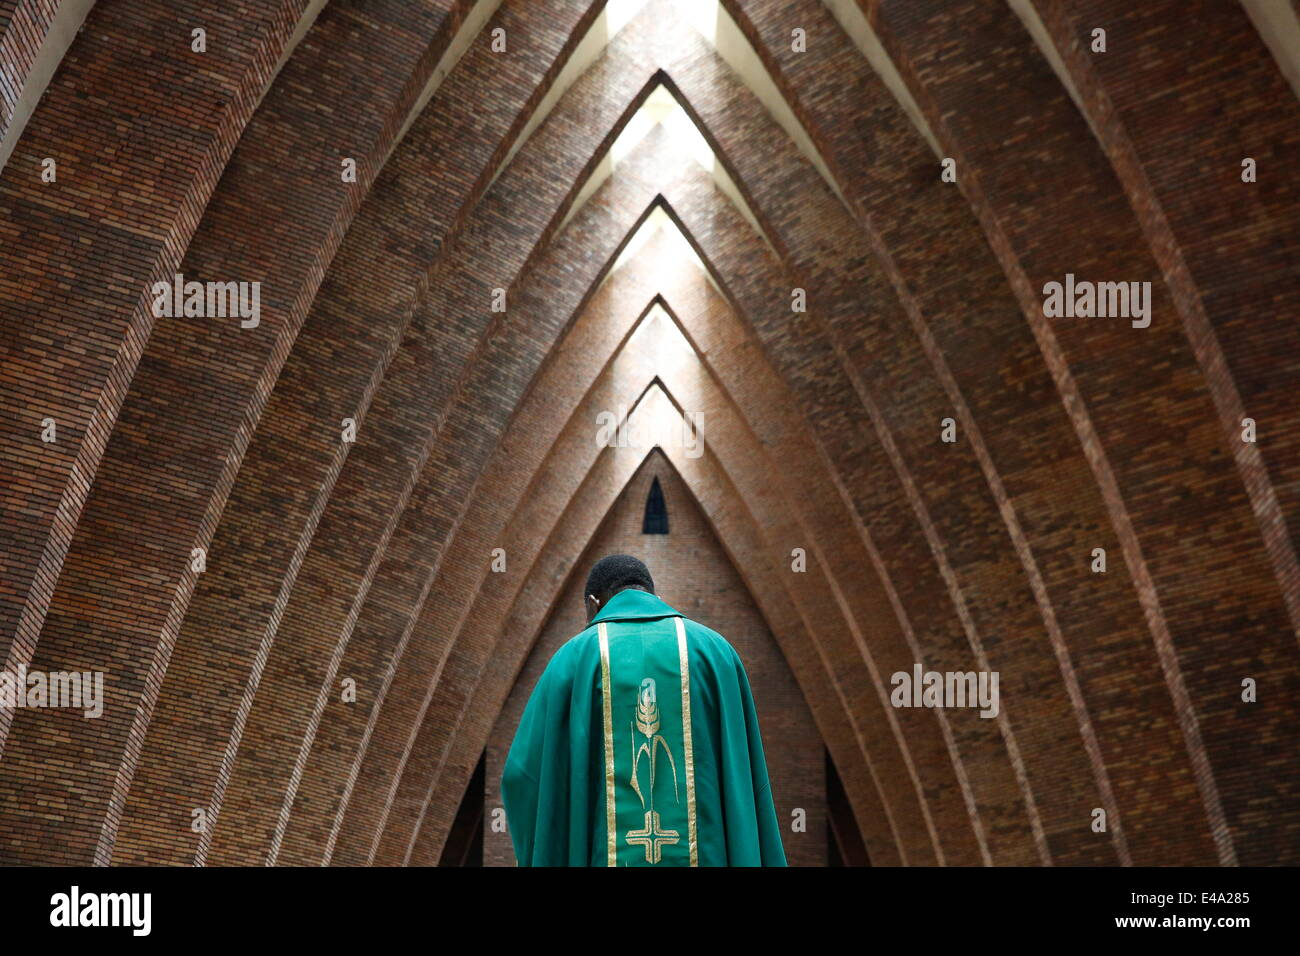 Priest during Catholic Mass, St. Anne's Basilica, Brazzaville, Congo, Africa - Stock Image